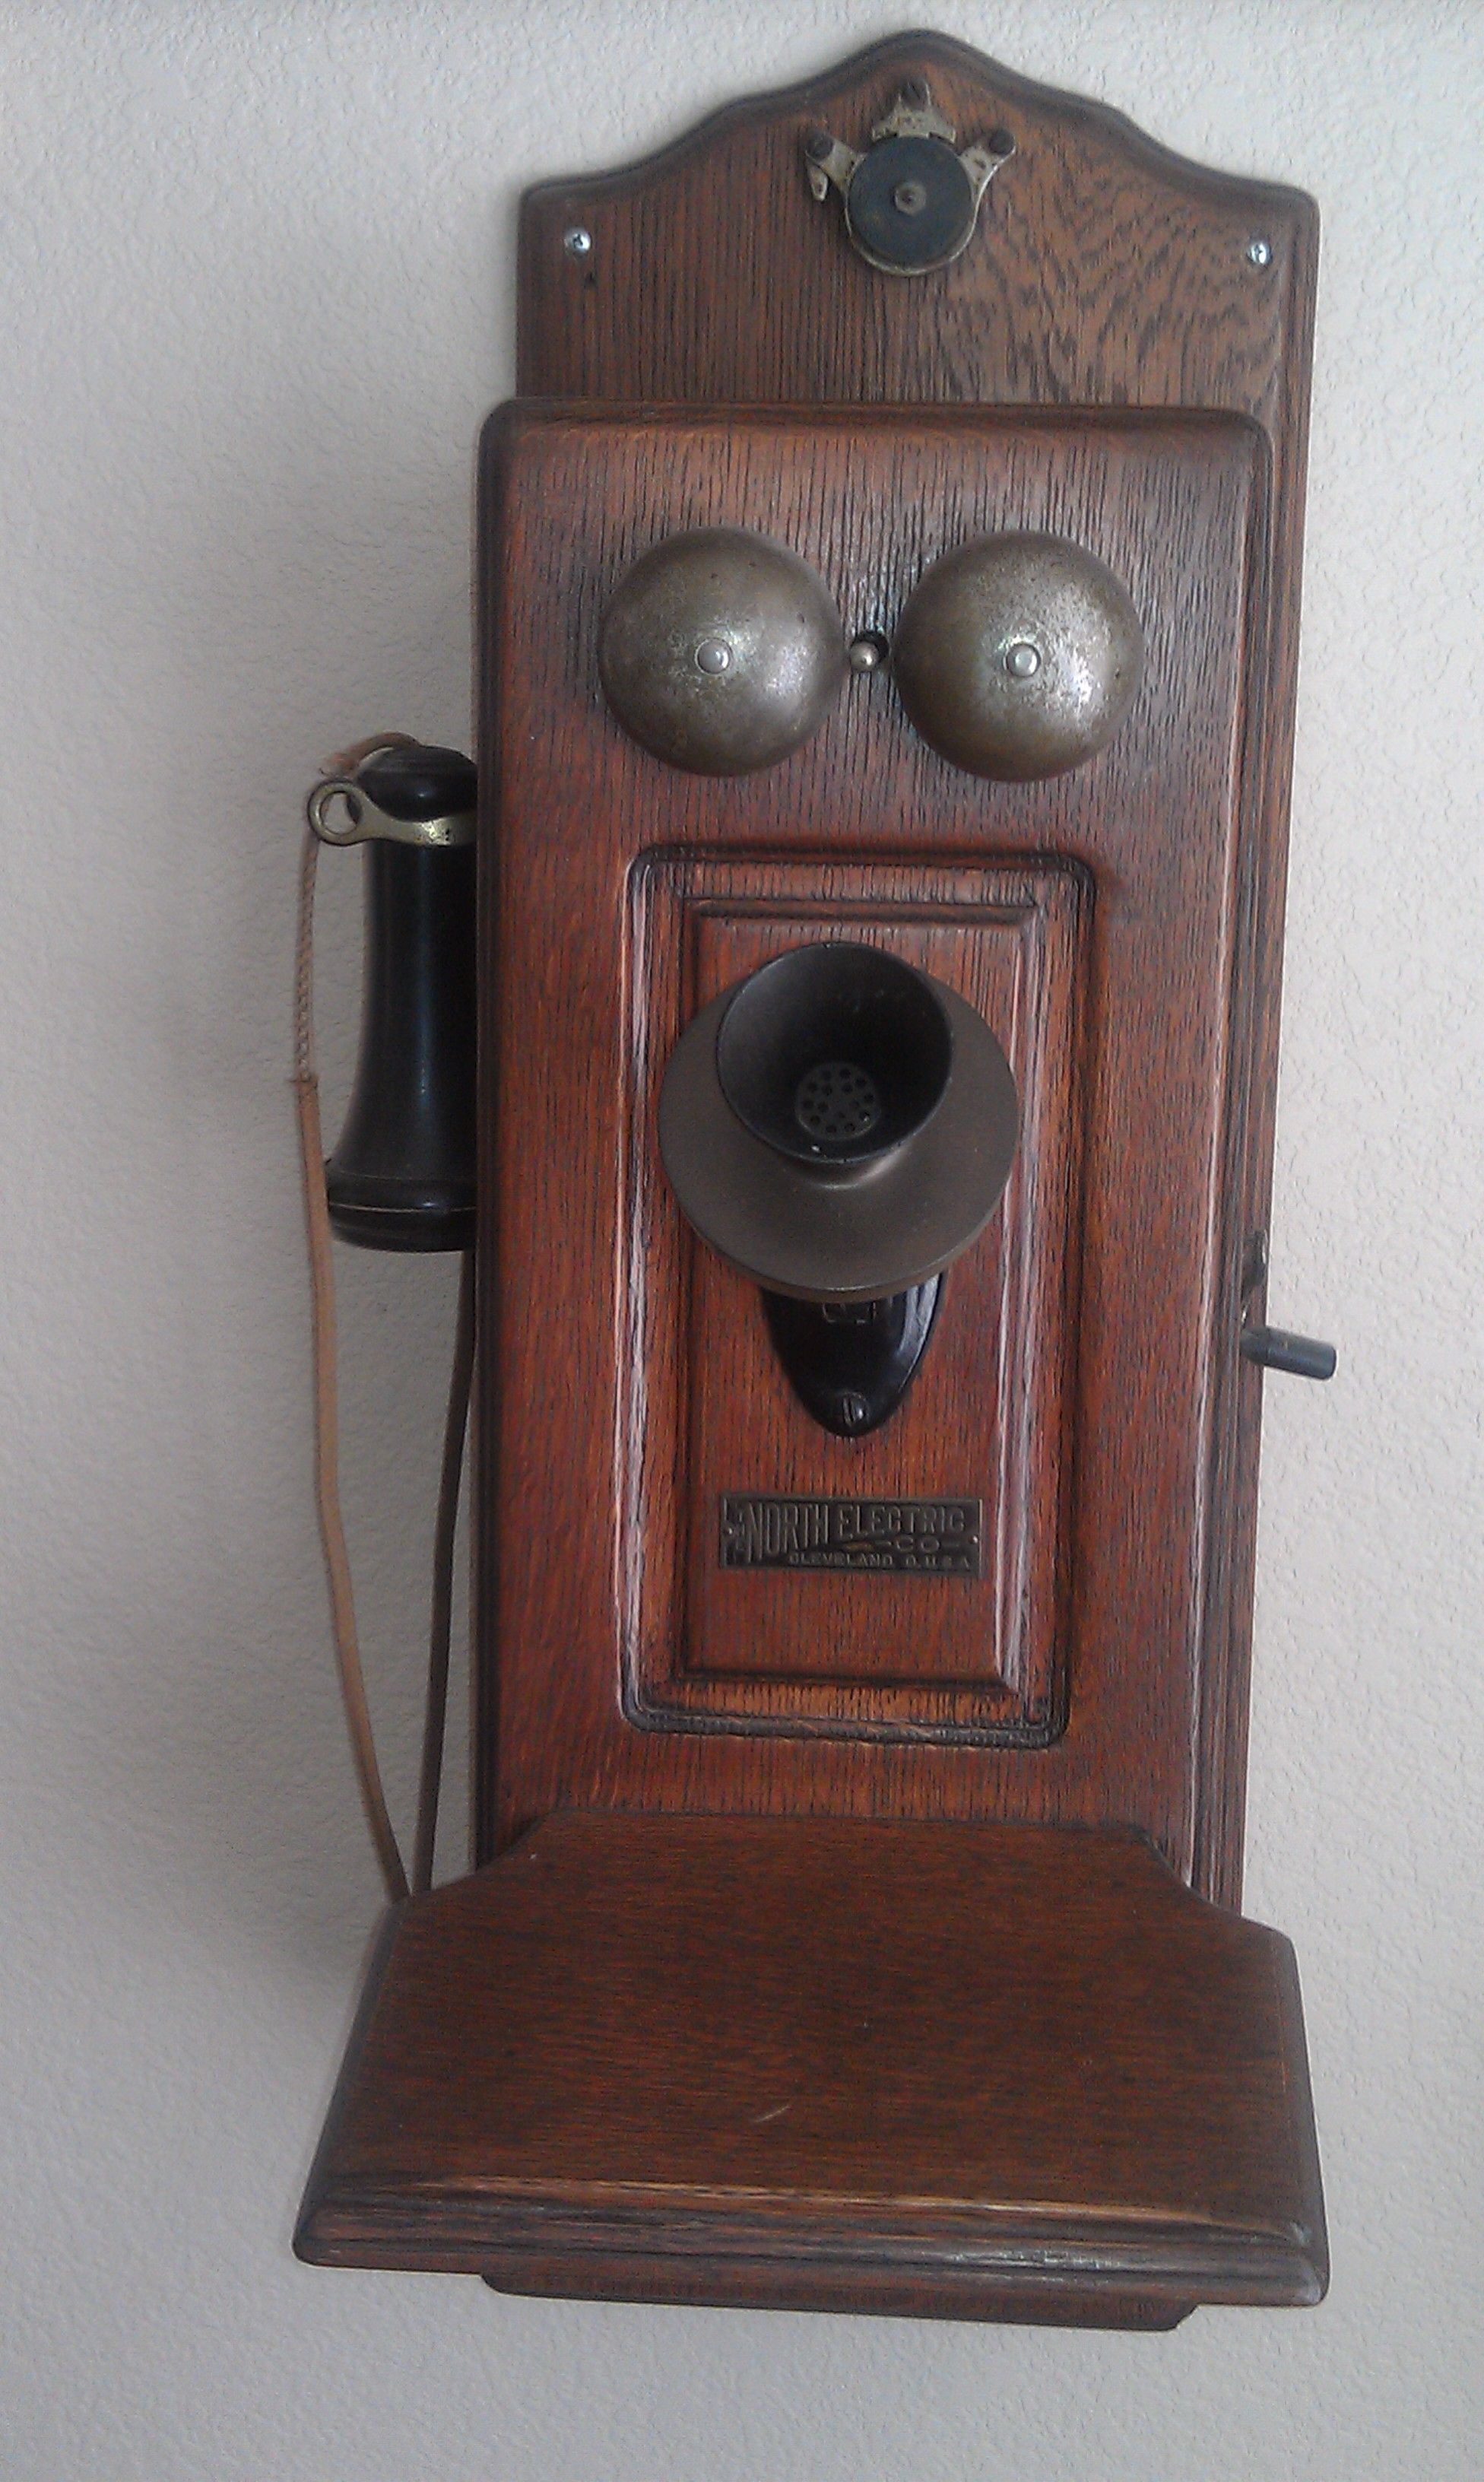 1904 north electric co phone this was our first telephone  [ 1952 x 3264 Pixel ]